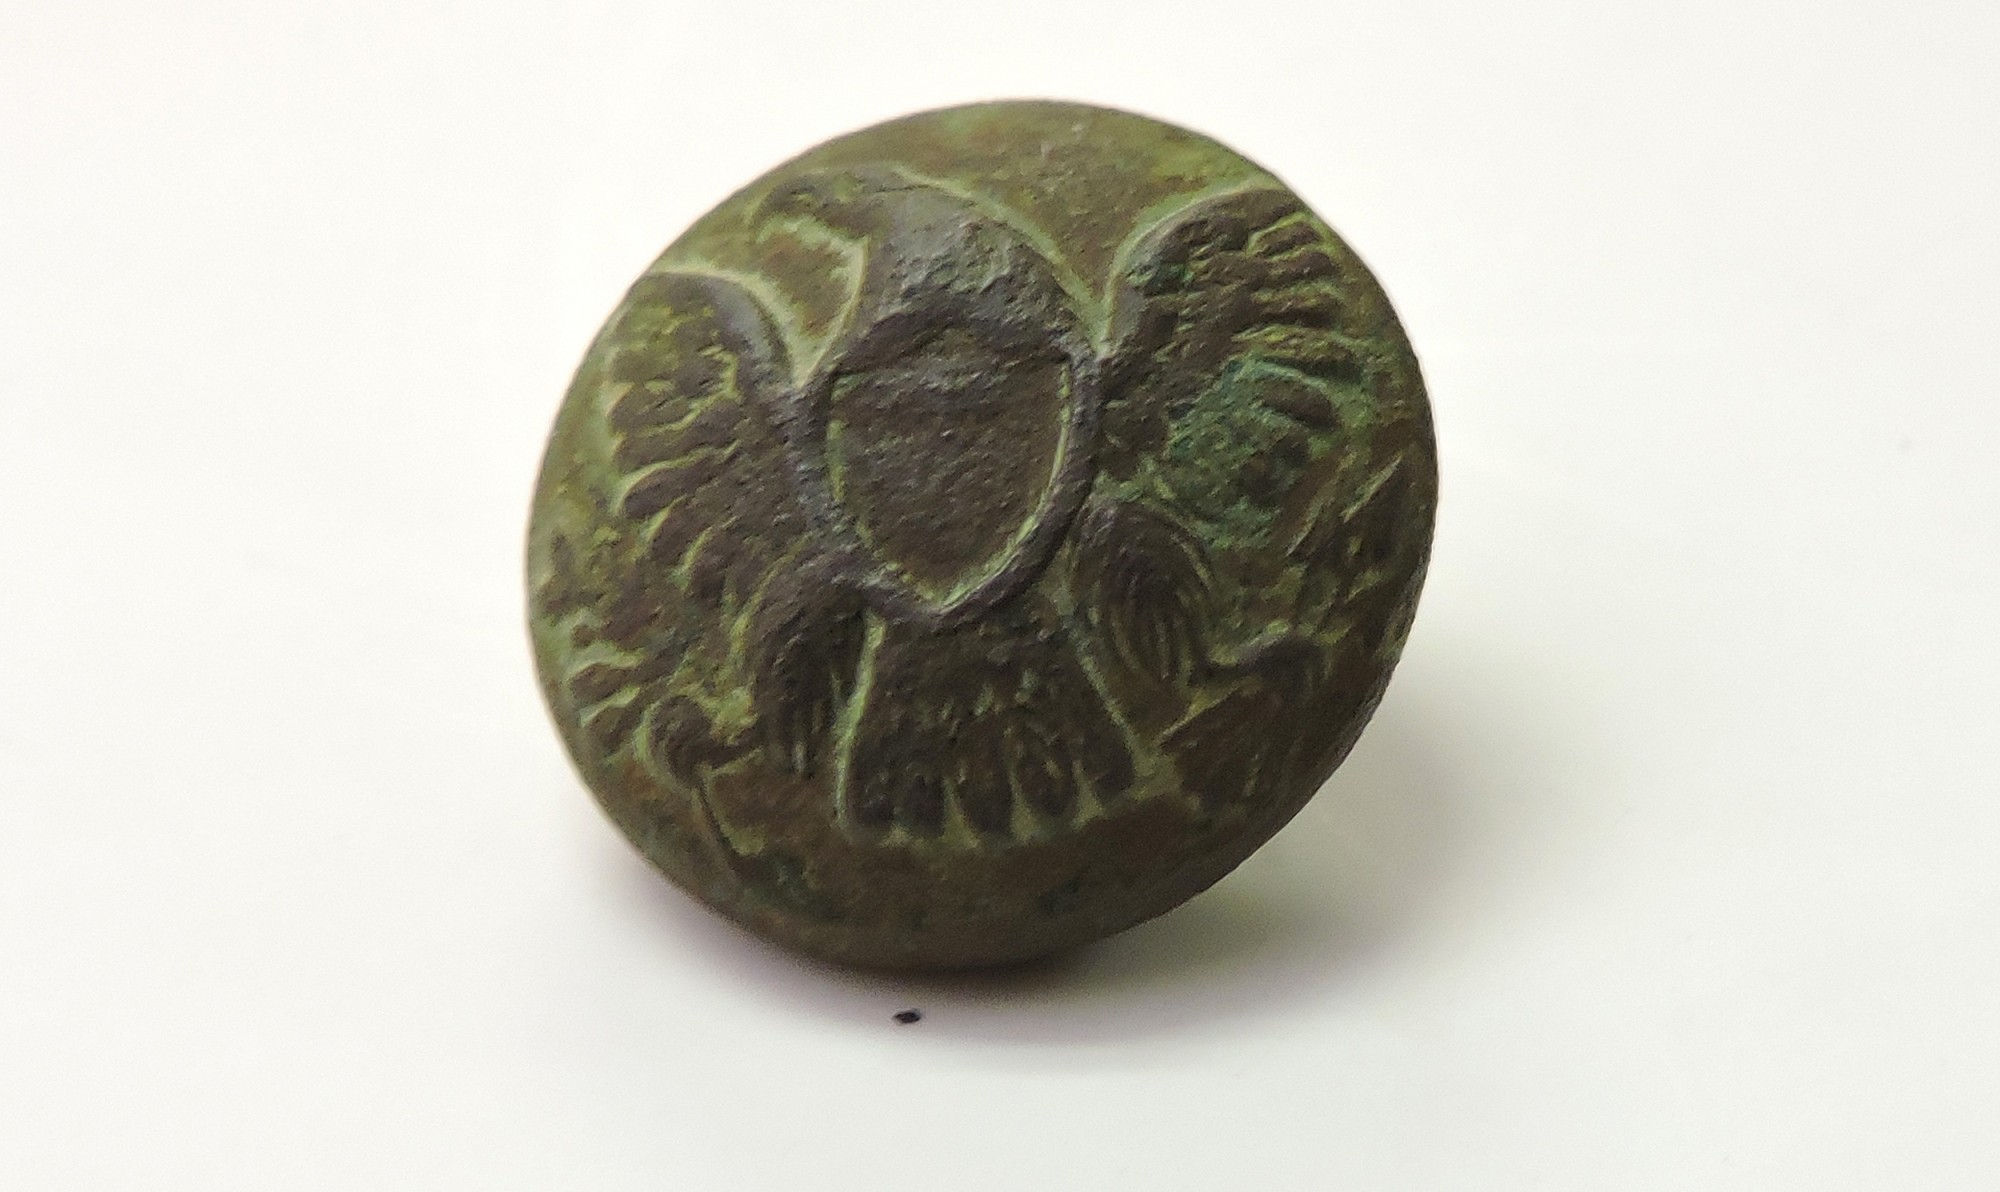 US ENLISTEDMAN'S GENERAL SERVICE EAGLE JACKET BUTTON FOUND EAST OF THE STONE WALL IN THE HISTORIC WHEATFIELD AT GETTYSBURG